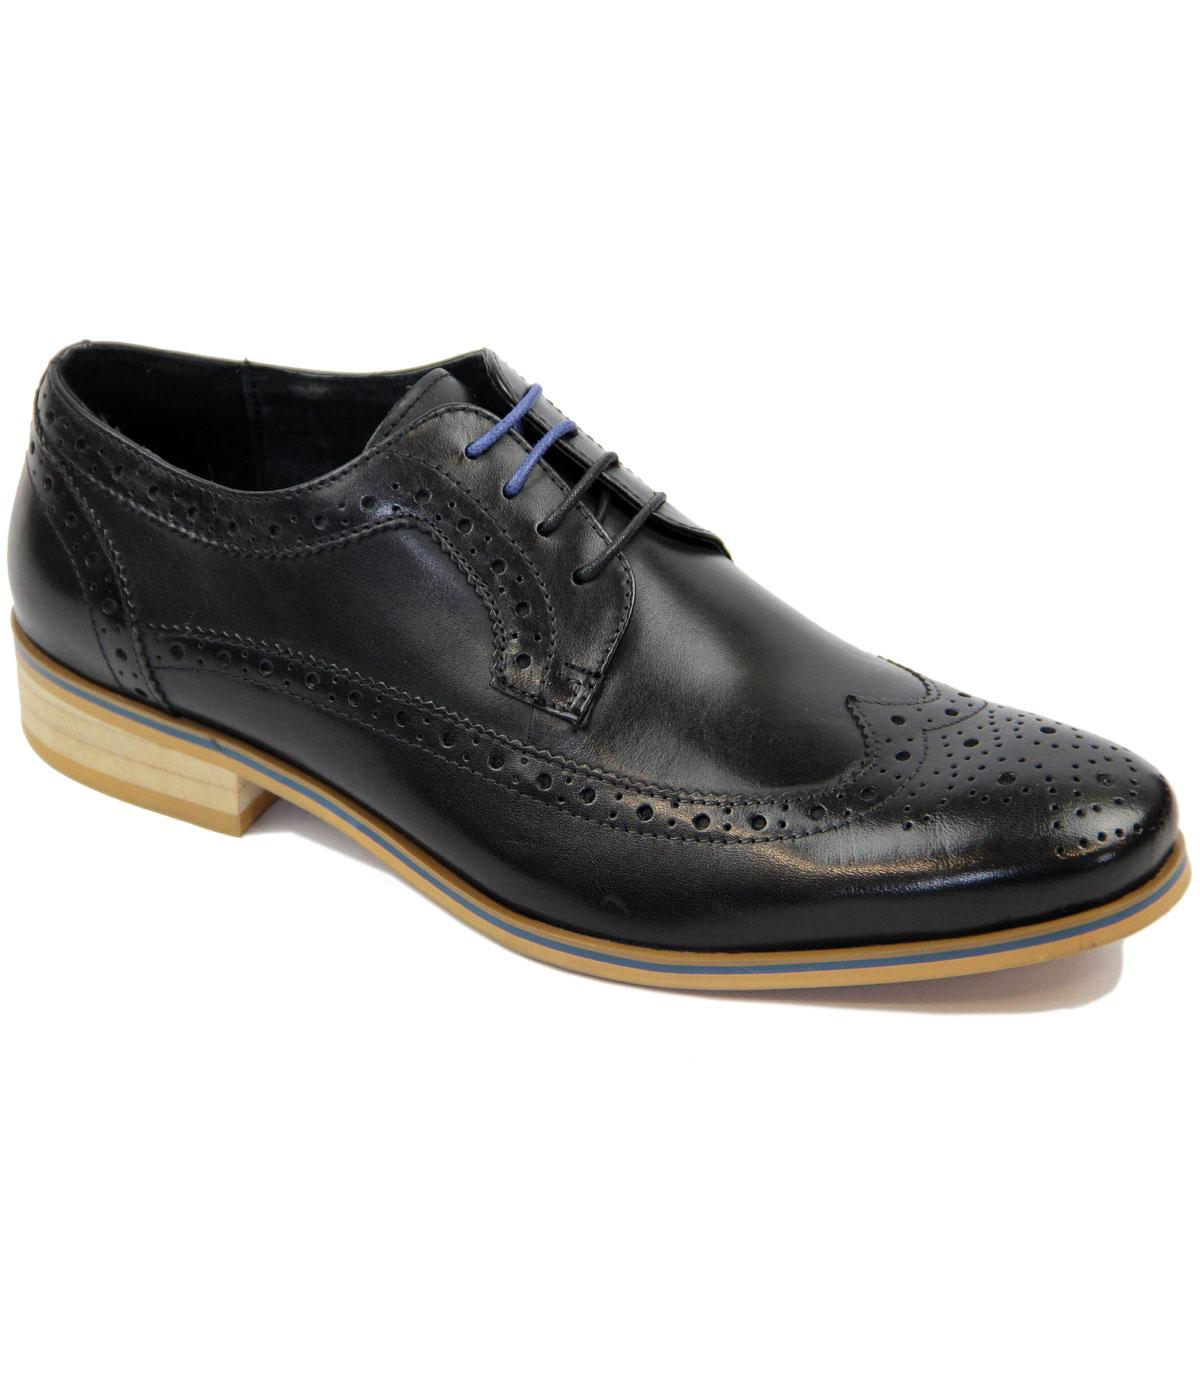 Limehouse PAOLO VANDINI Mod Long Wing Brogues (B)